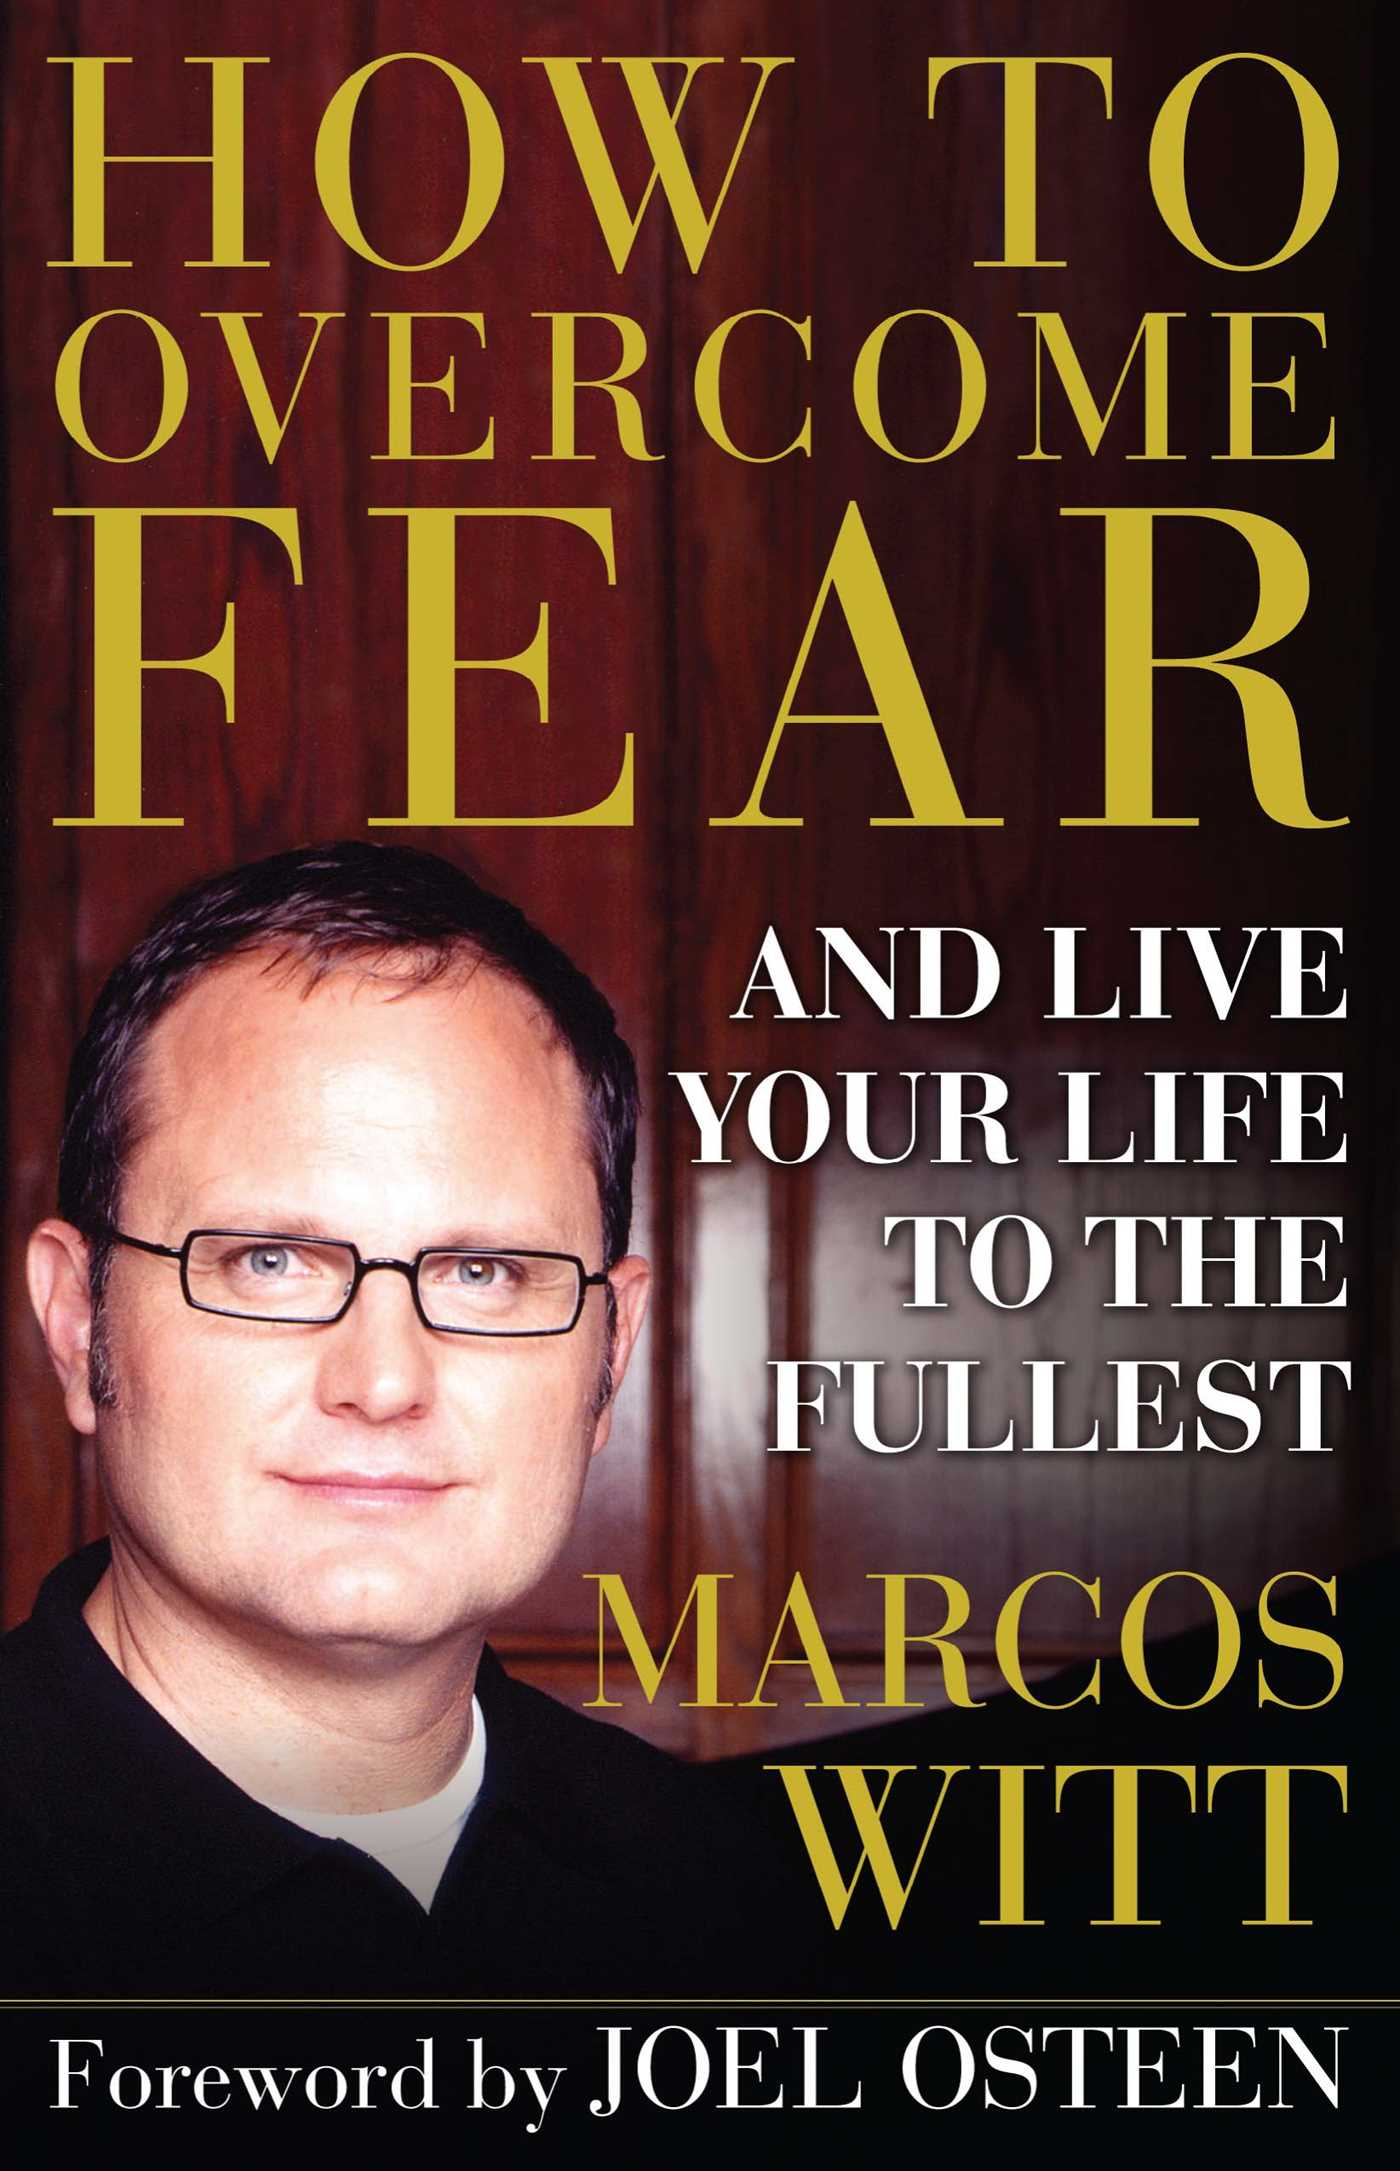 How-to-overcome-fear-9780743290845_hr